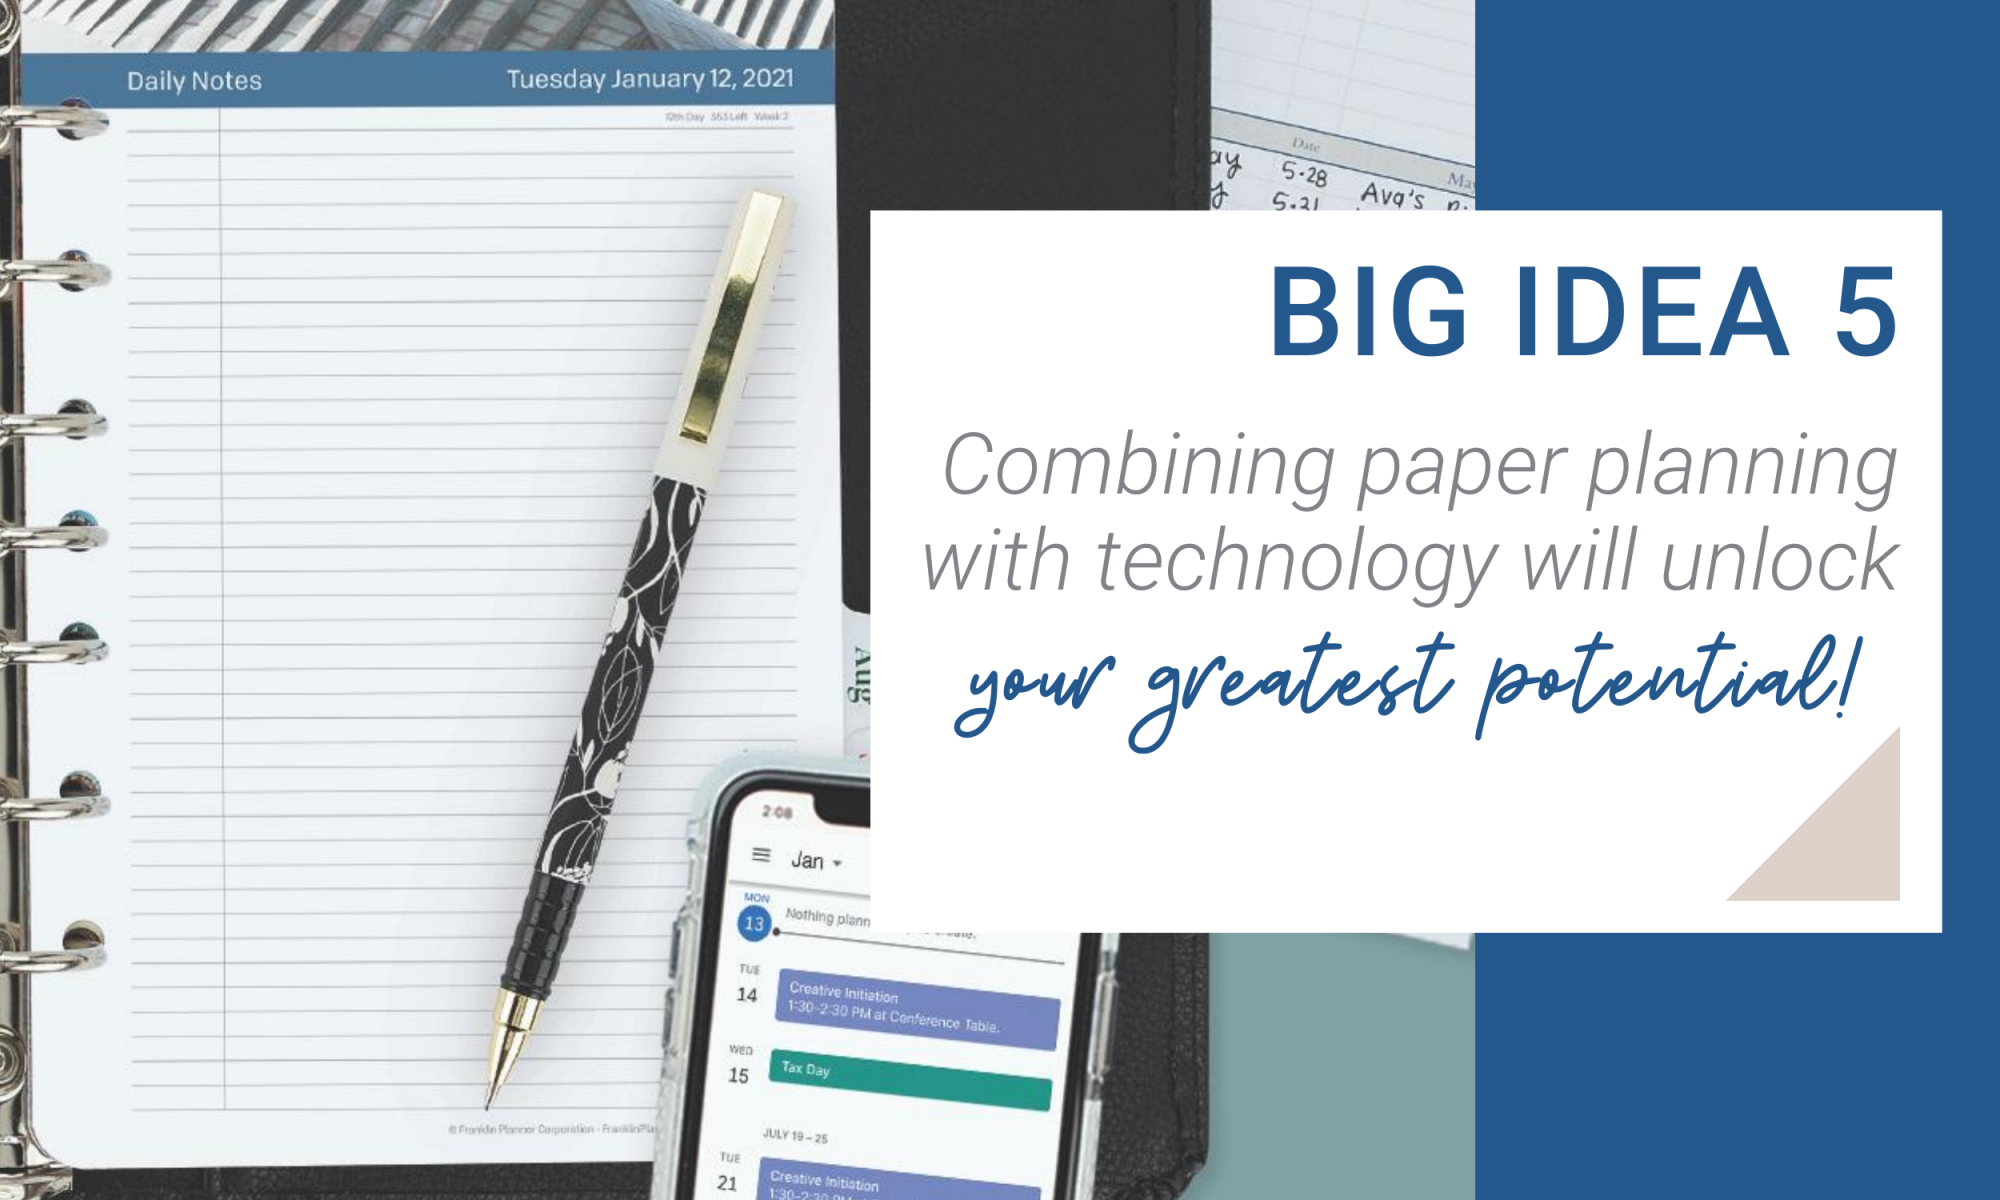 Big Idea 5. Combining paper planning with technology will unlock your greatest potential